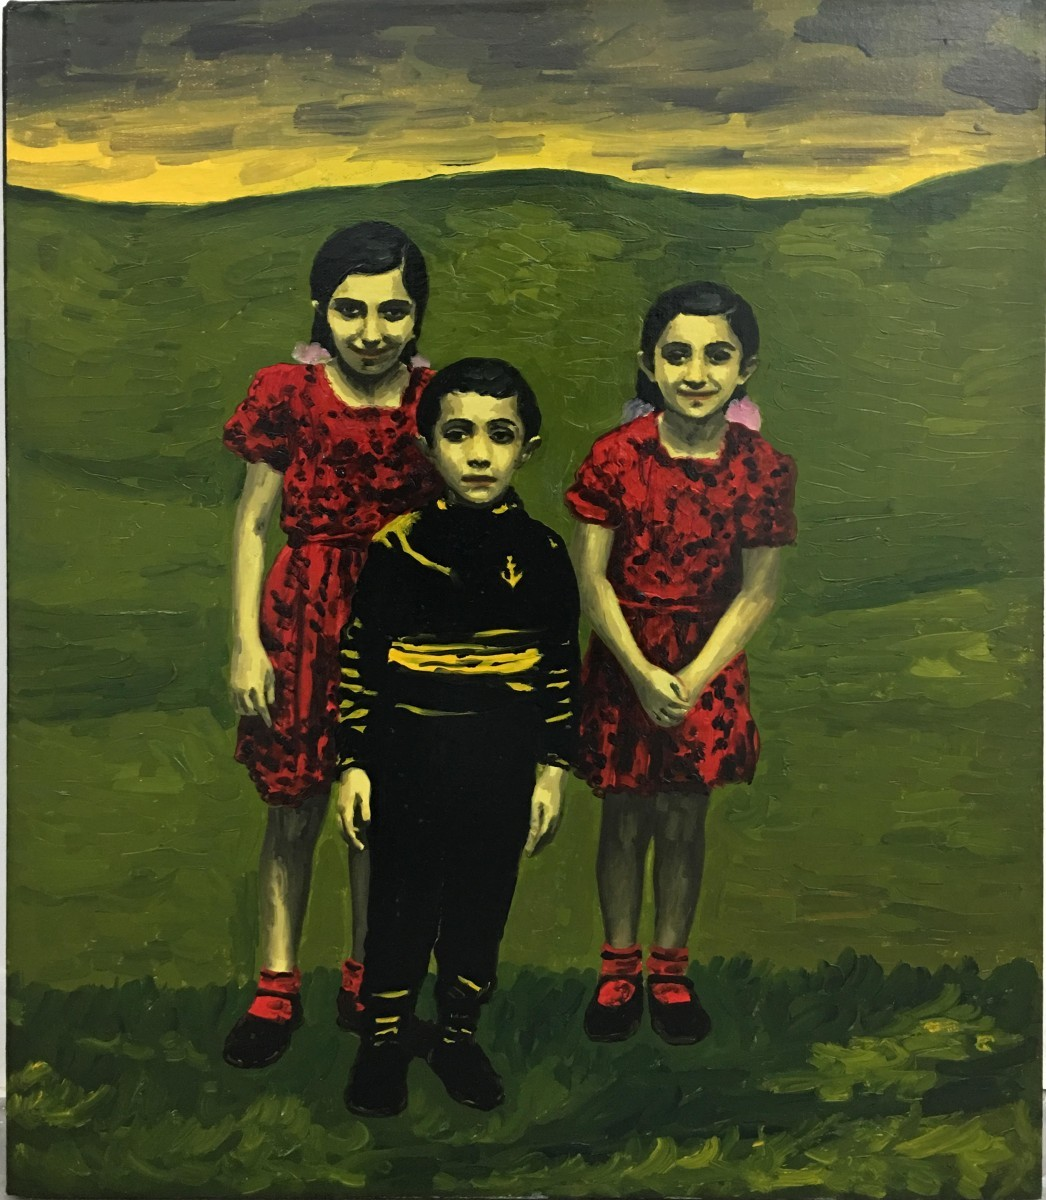 S-119, Meir Pichhadze, 1996, Oil on paper mounted on canvas, 61x51 cm 9,500$